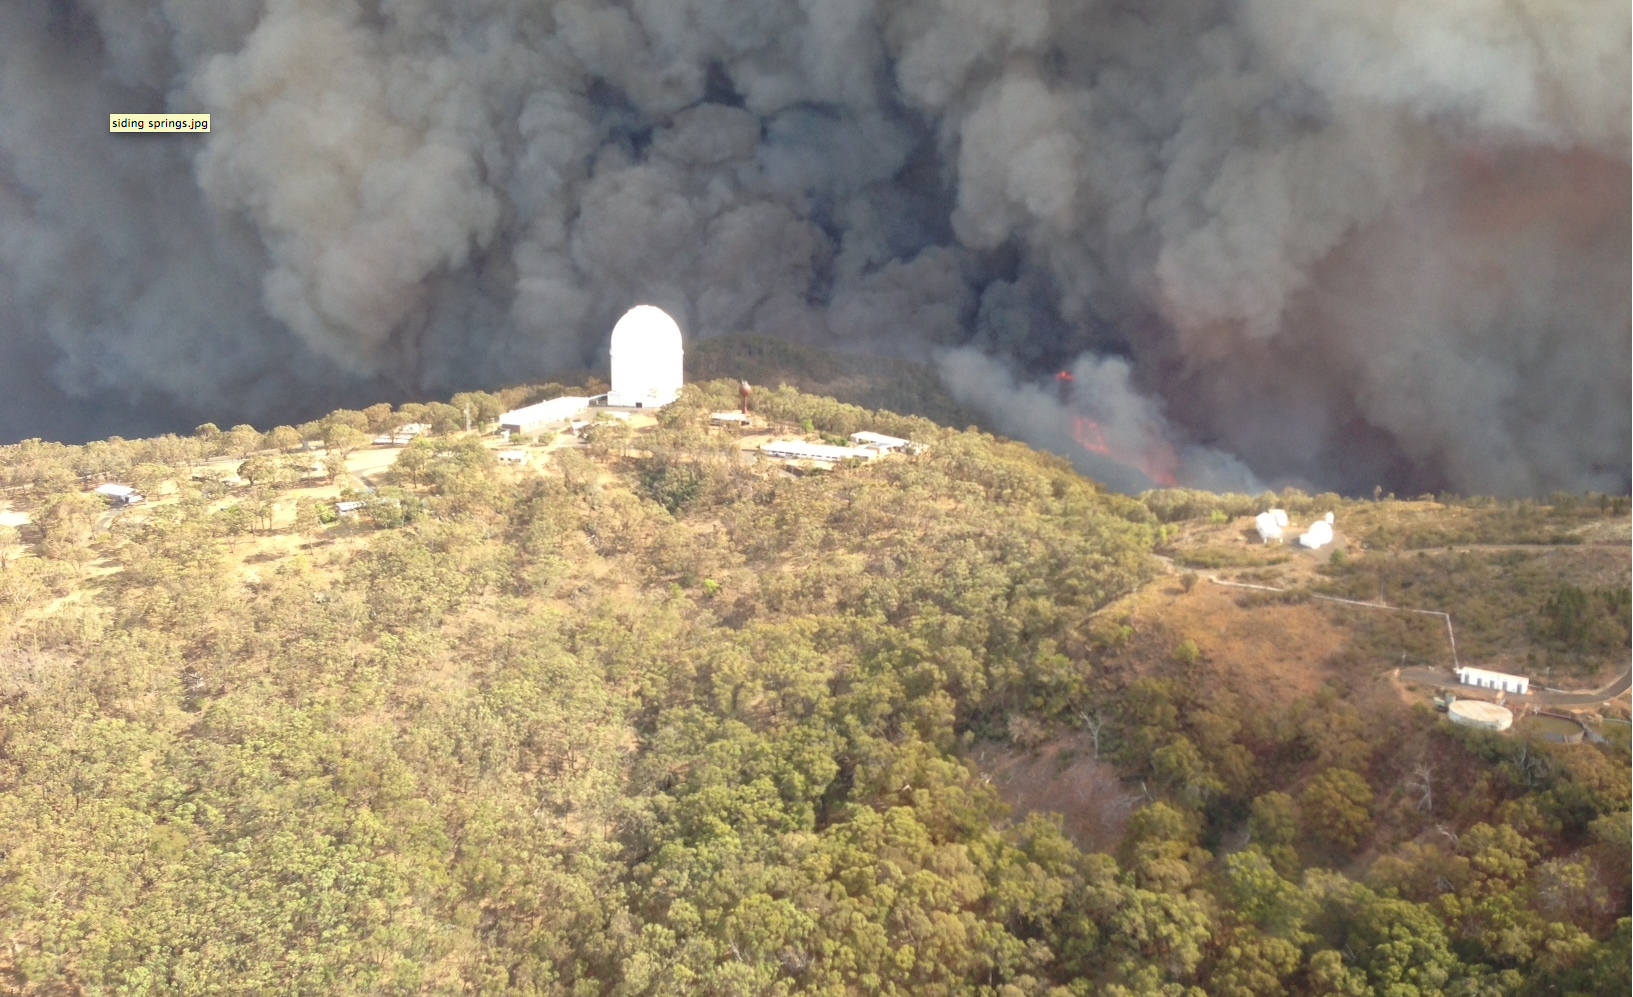 Siding Spring Observatory Is Being Threatened By A Bush